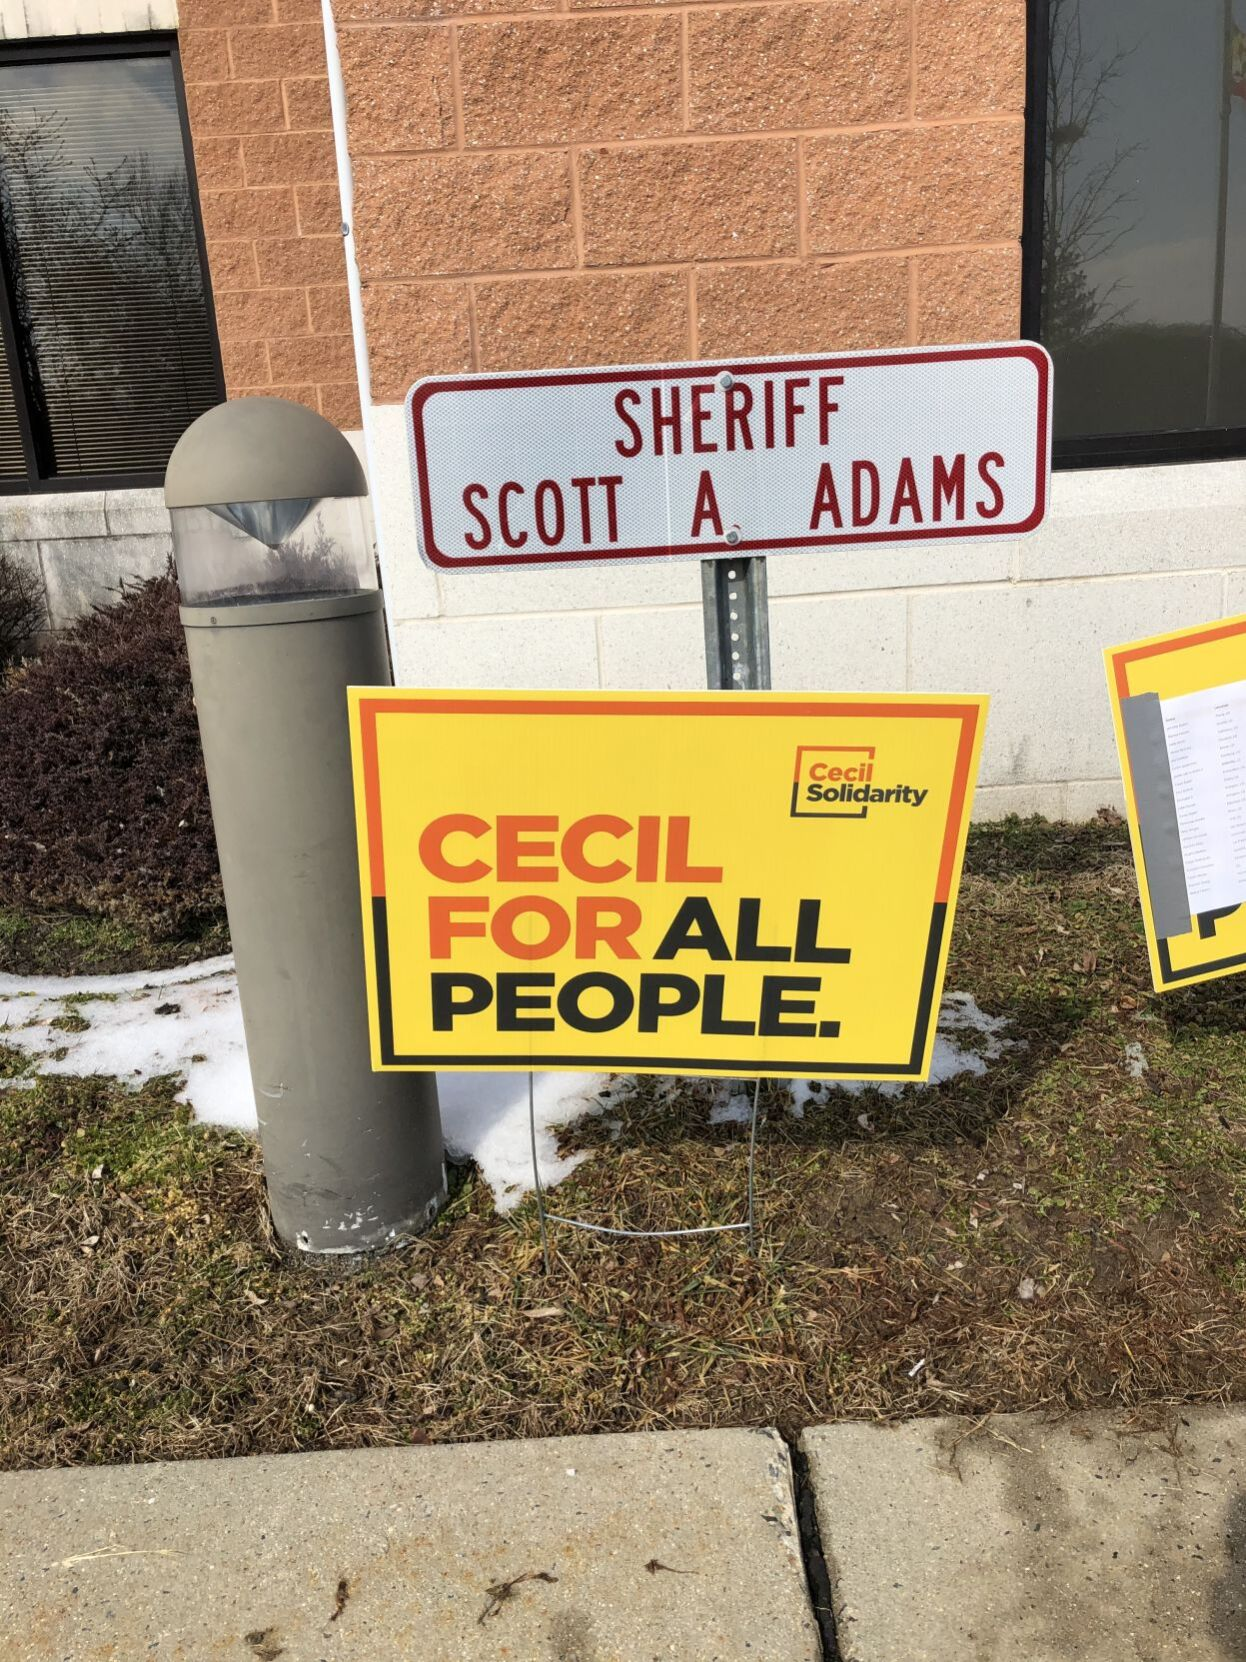 Cecil Solidarity protests to demand the firing of a sheriff's deputy